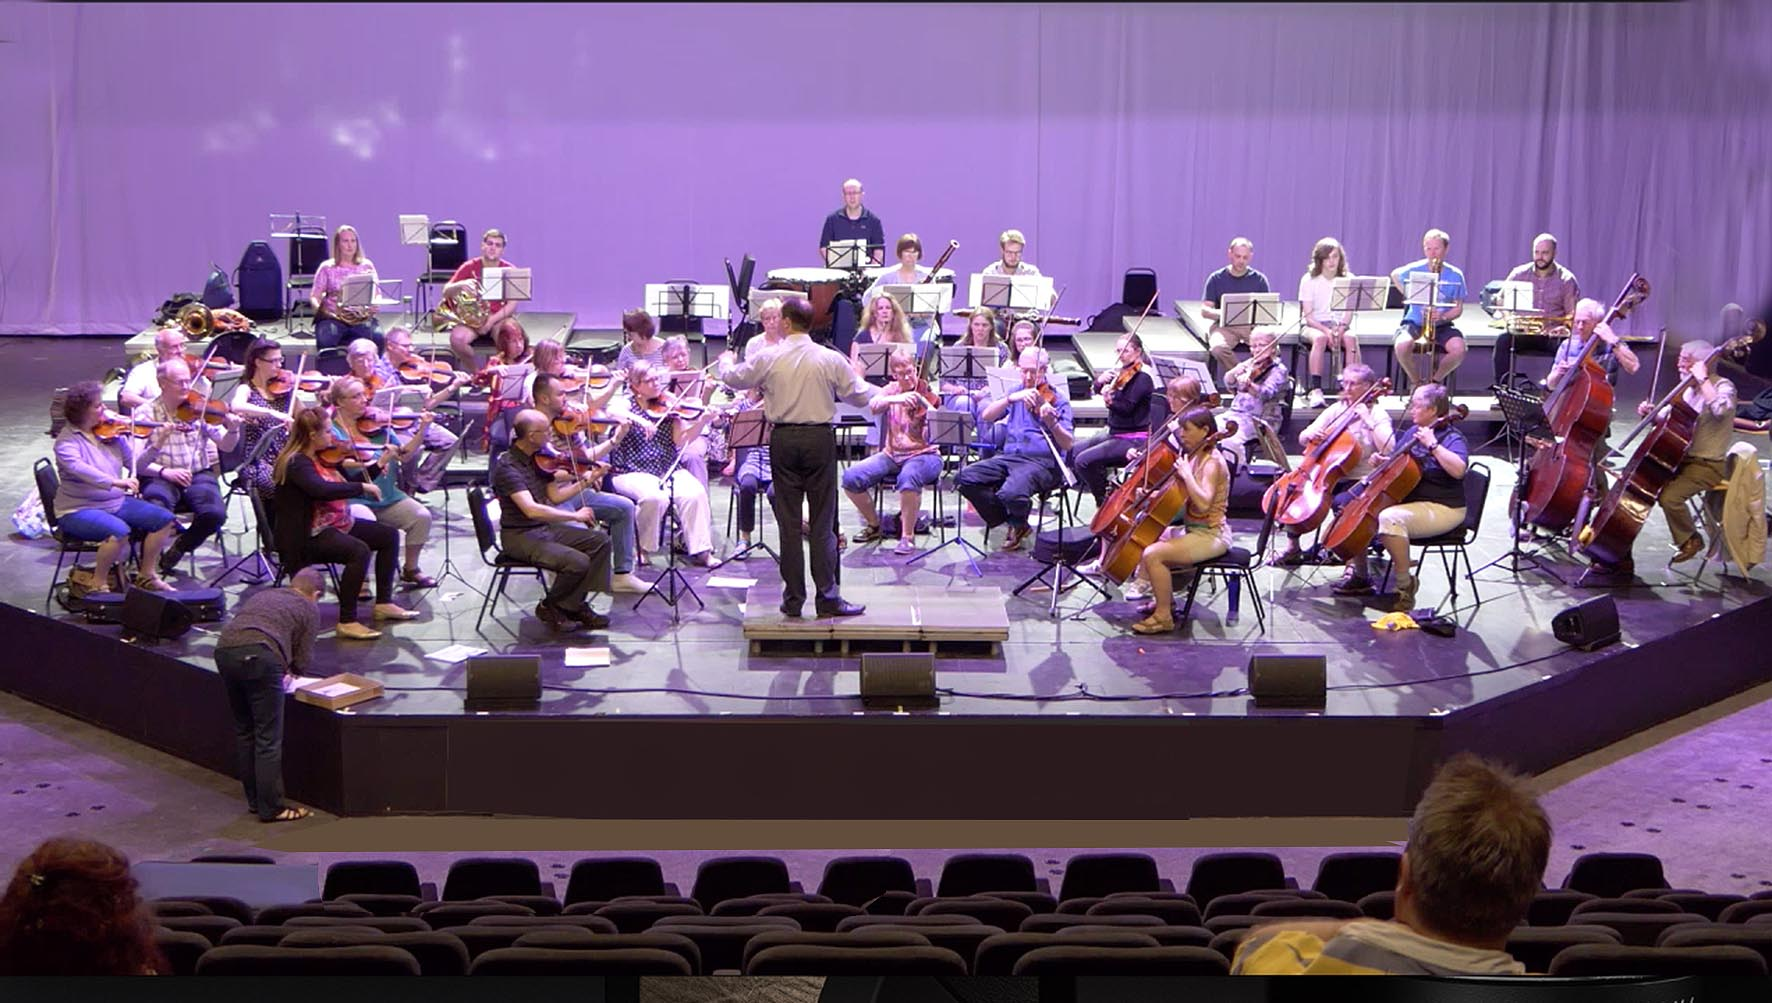 The Bardi are the first orchestra to rehearse in the newly opened Haymarket Theatre